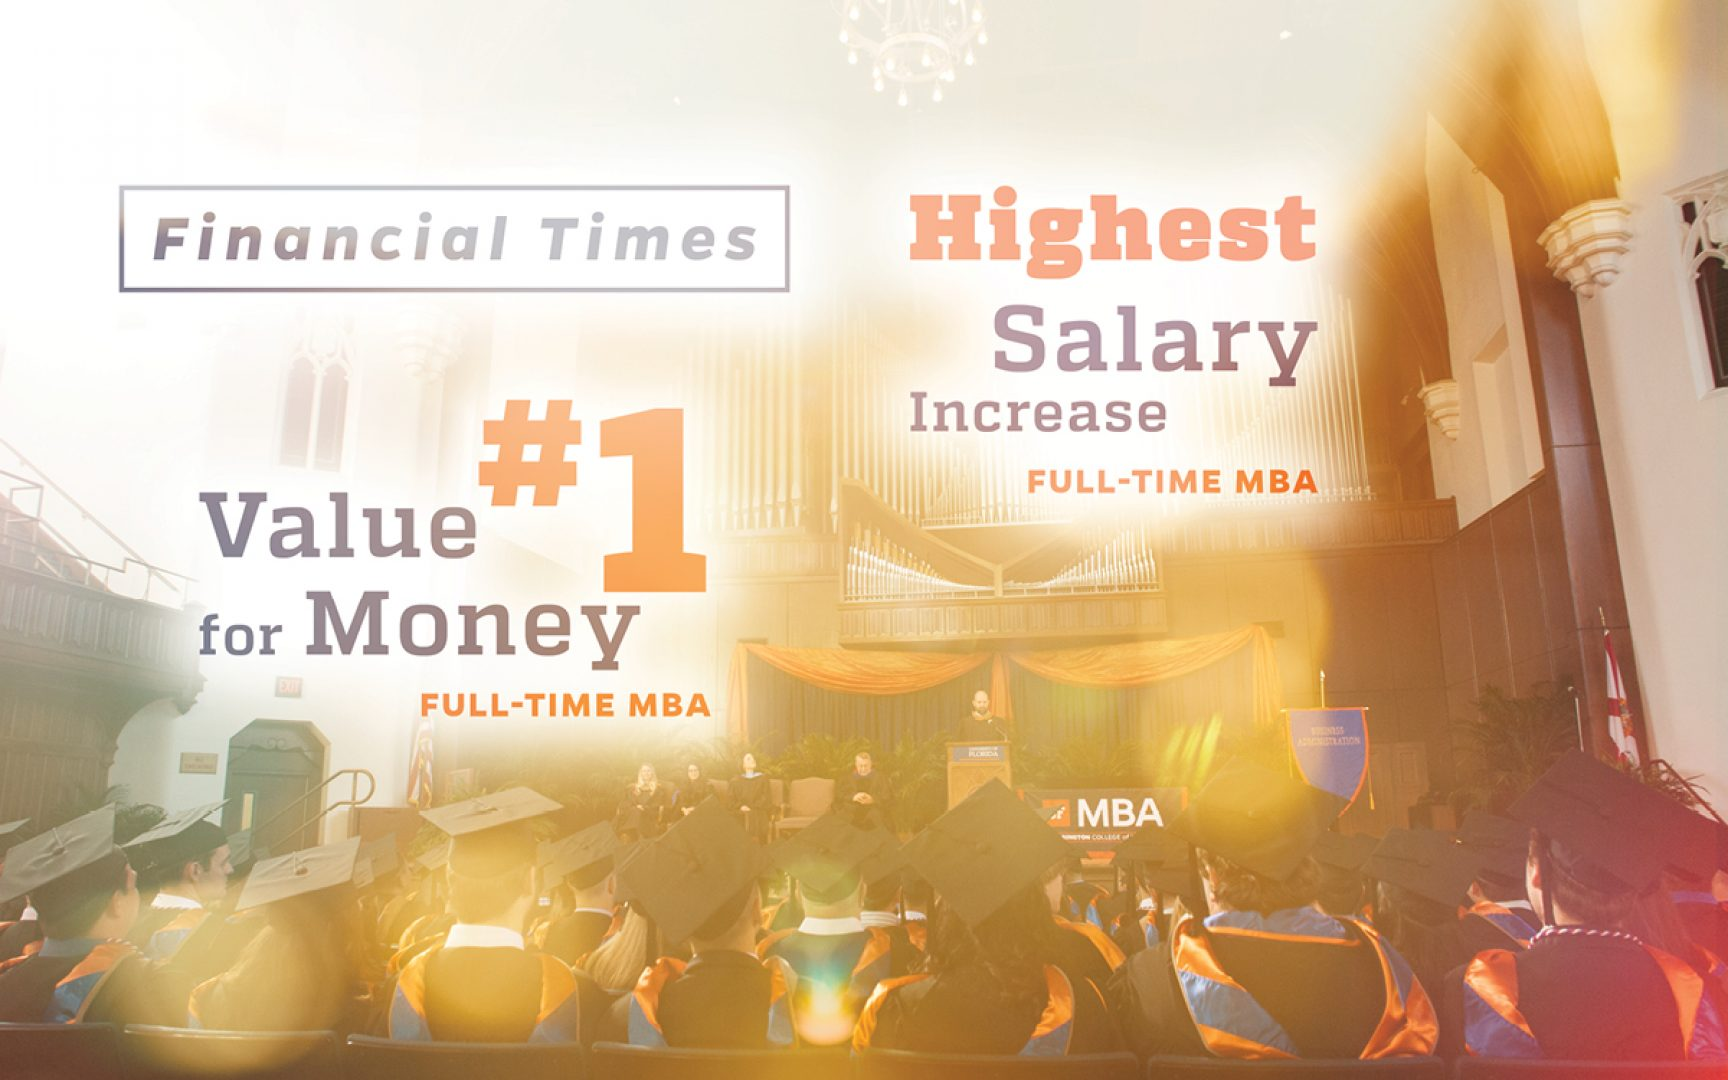 Graphic indicating Financial Times rankings for UF MBA: #1 Value for Money and Highest Salary Increase